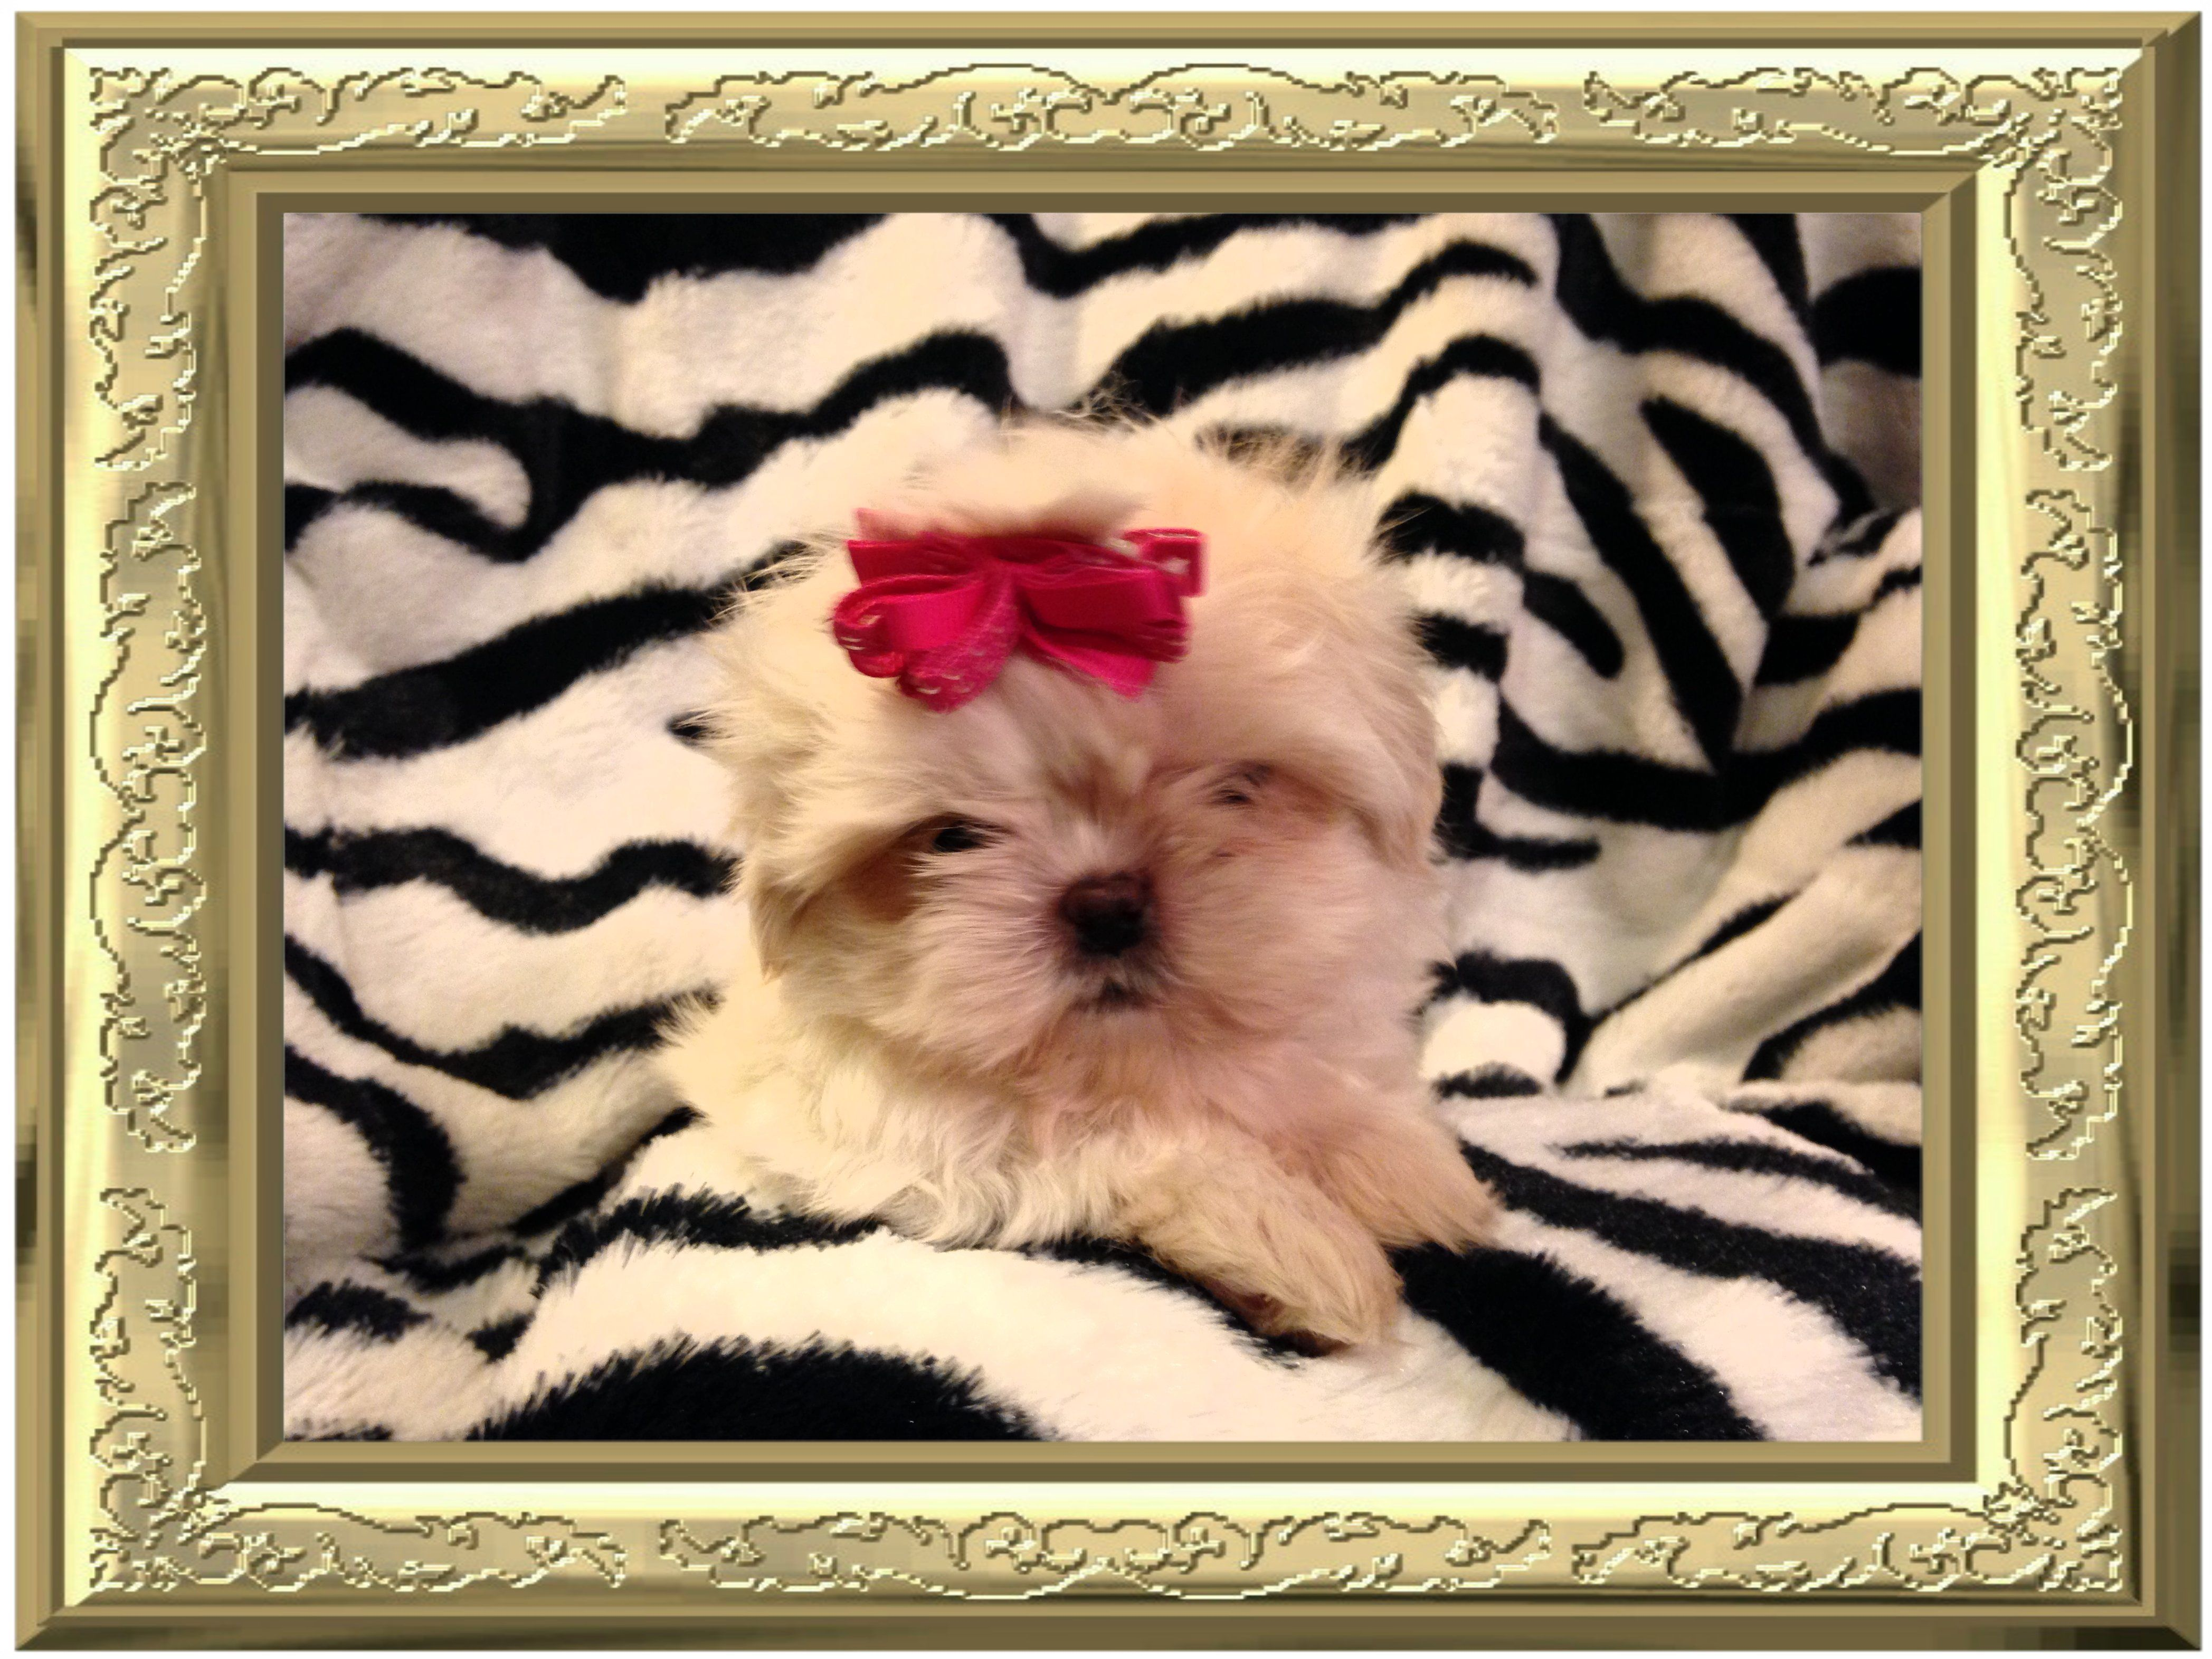 I M An Akc Tiny Teacup Shih Tzu Puppy For Sale Cream White